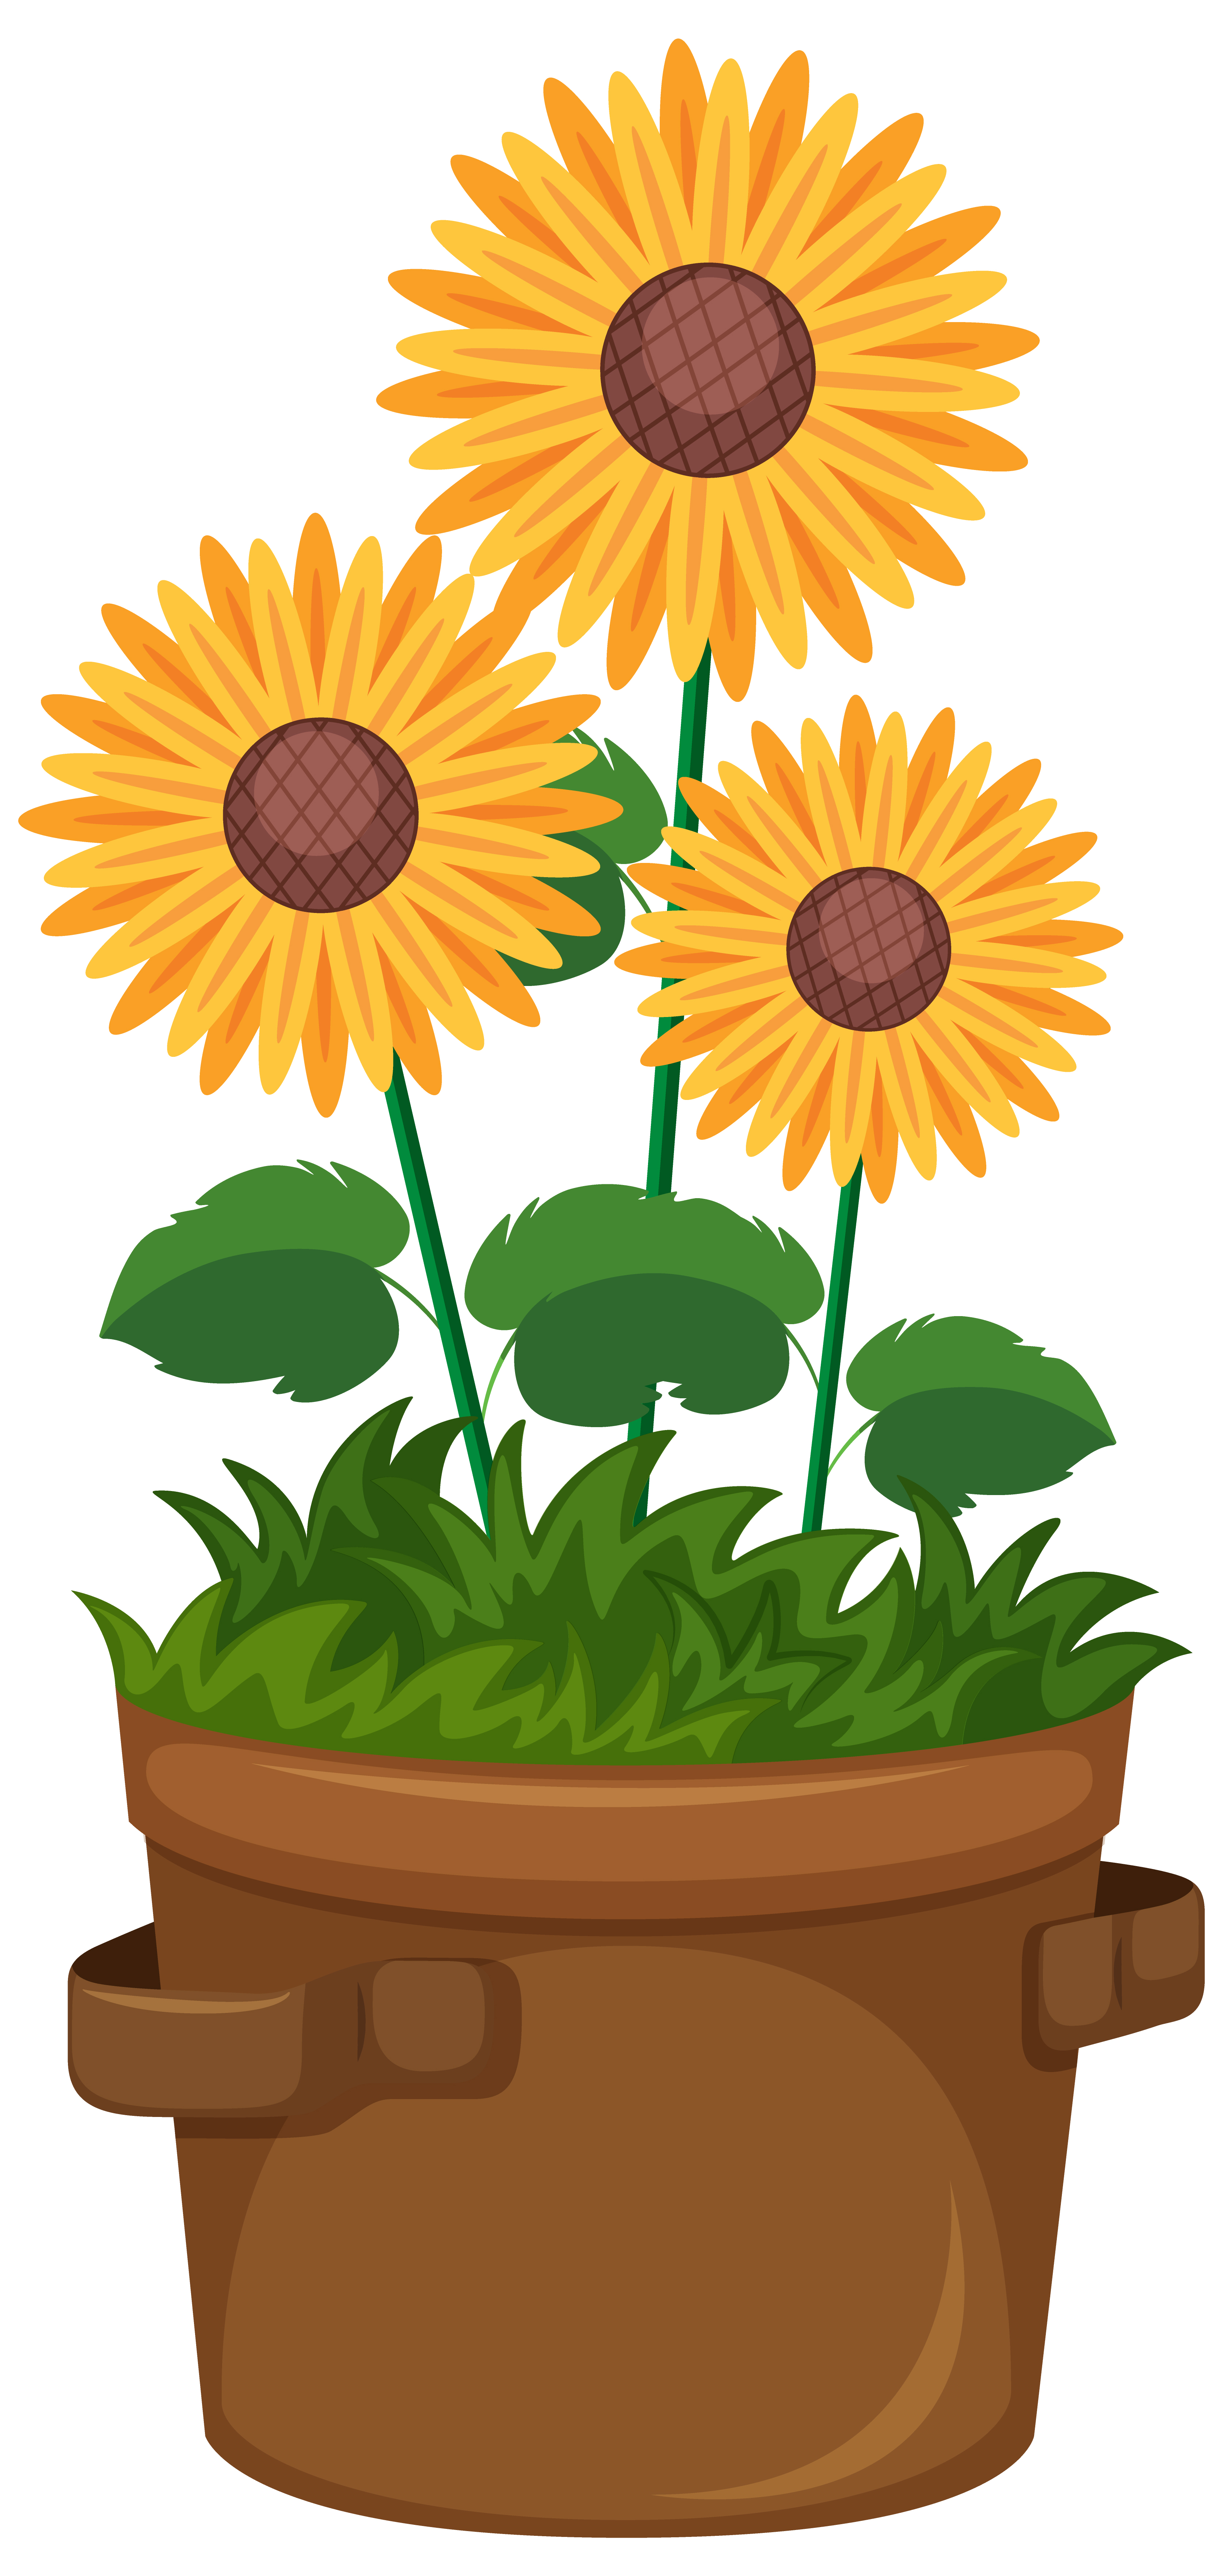 Beautiful Sunflowers In Pot On White Background Download Free Vectors Clipart Graphics Vector Art